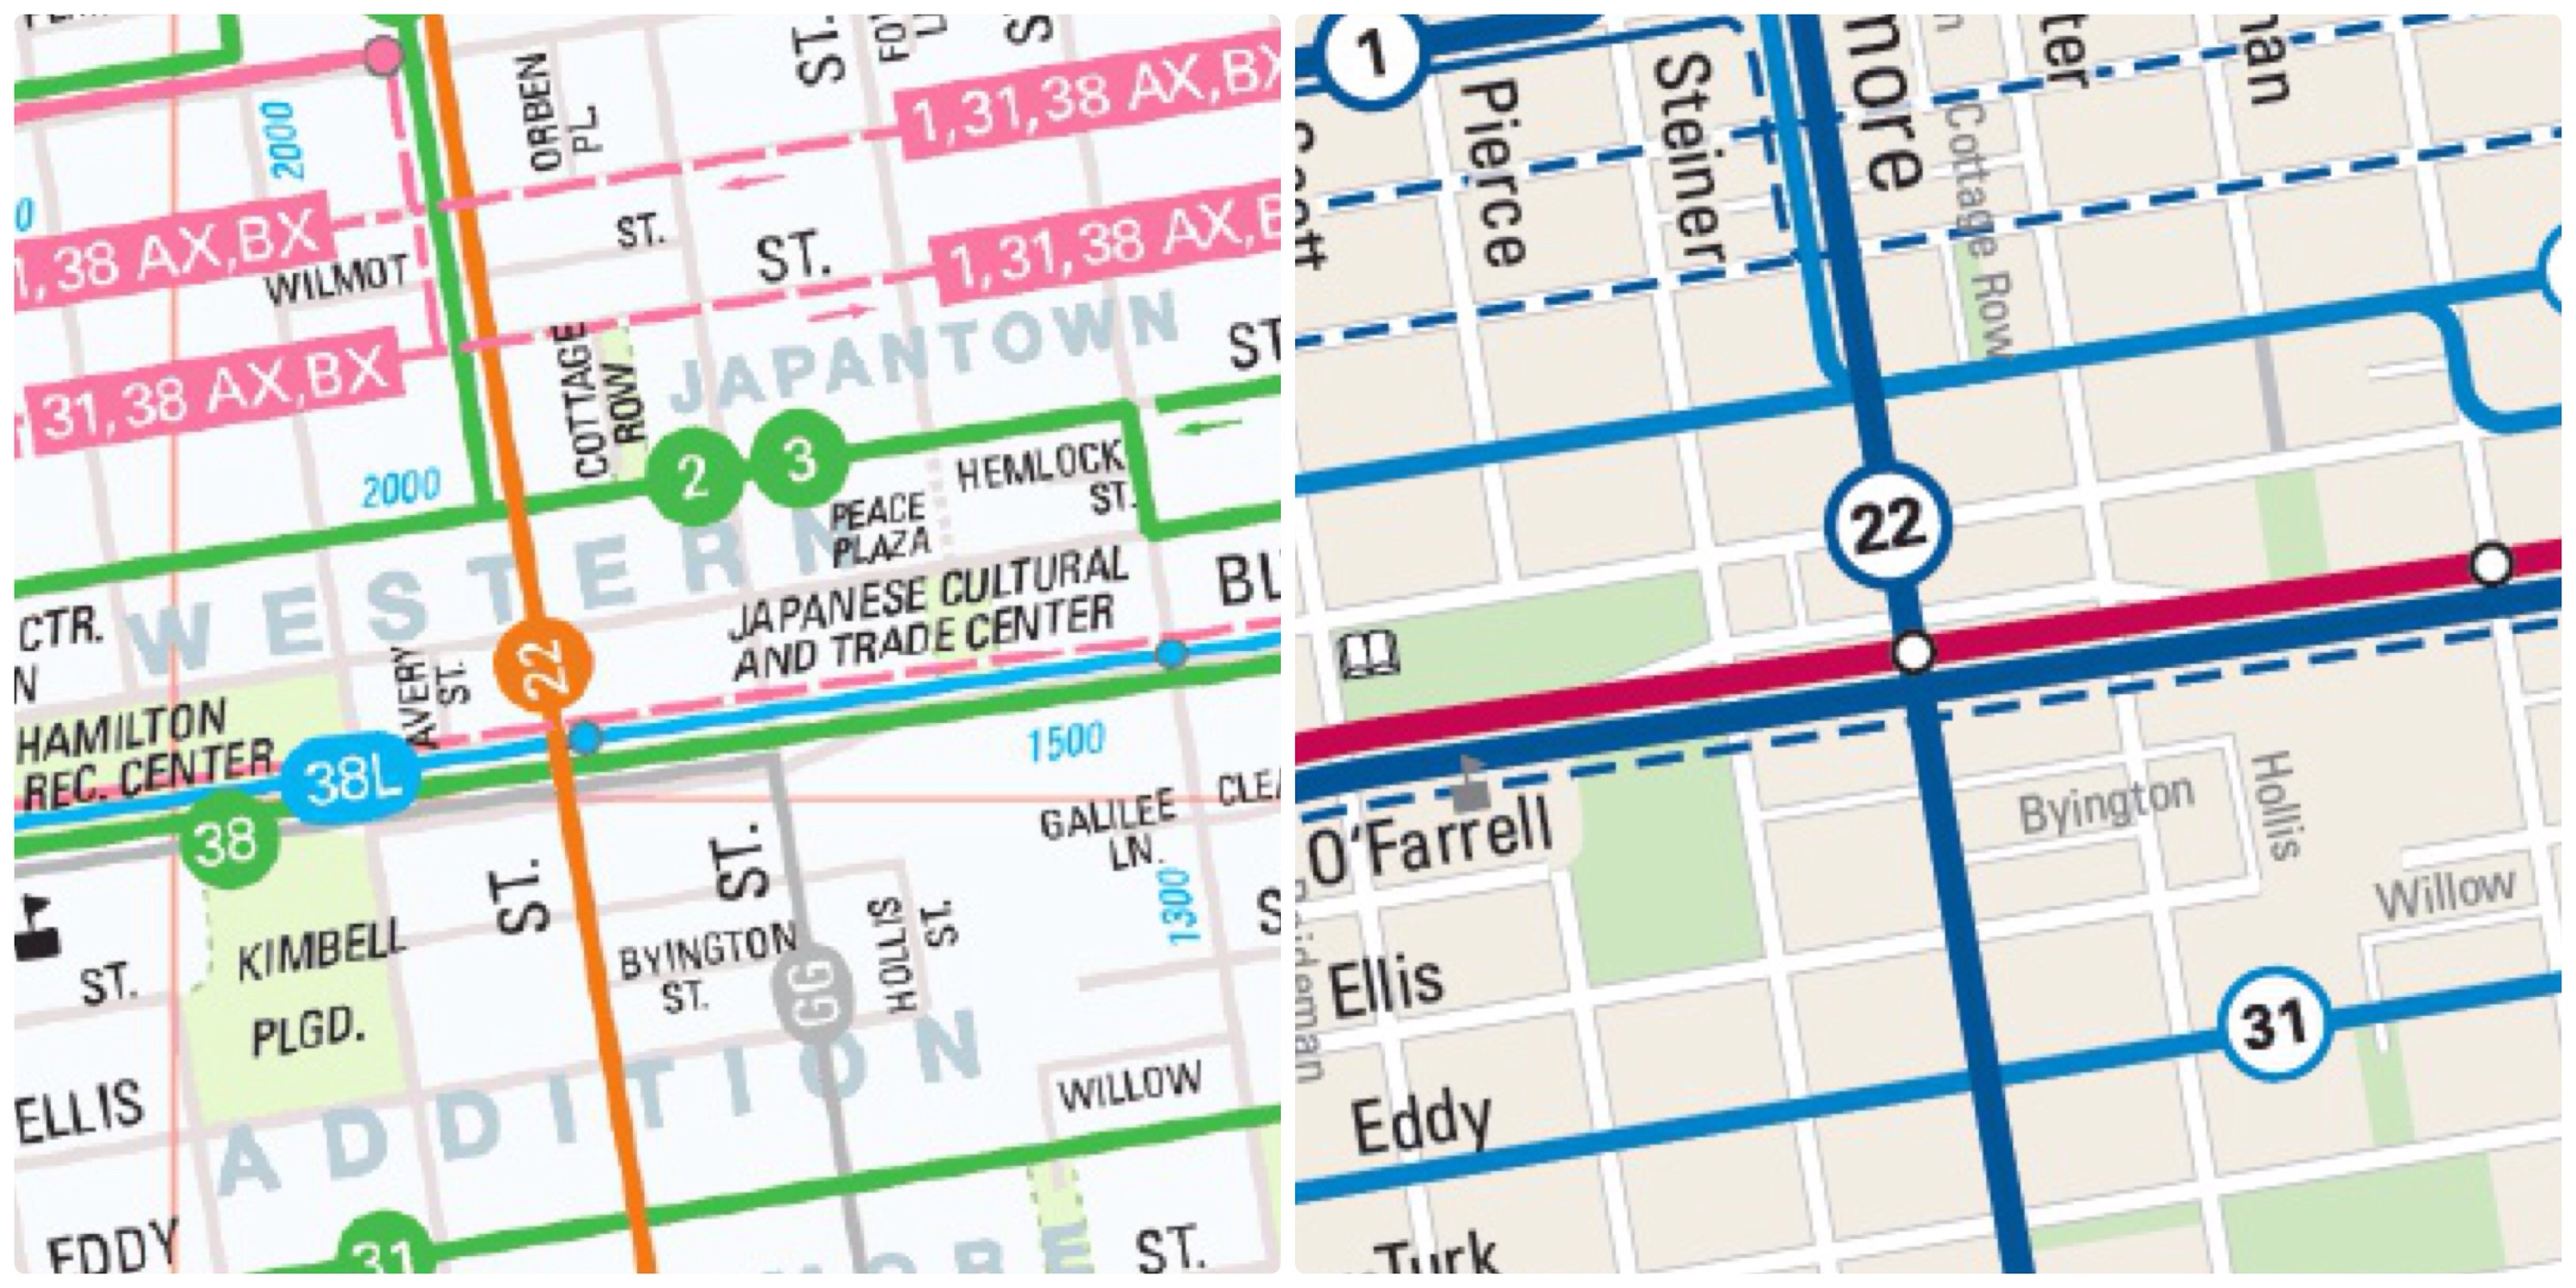 New Muni map offers cleaner design, but misses key info ... Sfmta Route Map on samtrans route map, san francisco route map, wrta route map, c-tran route map, ac transit route map,